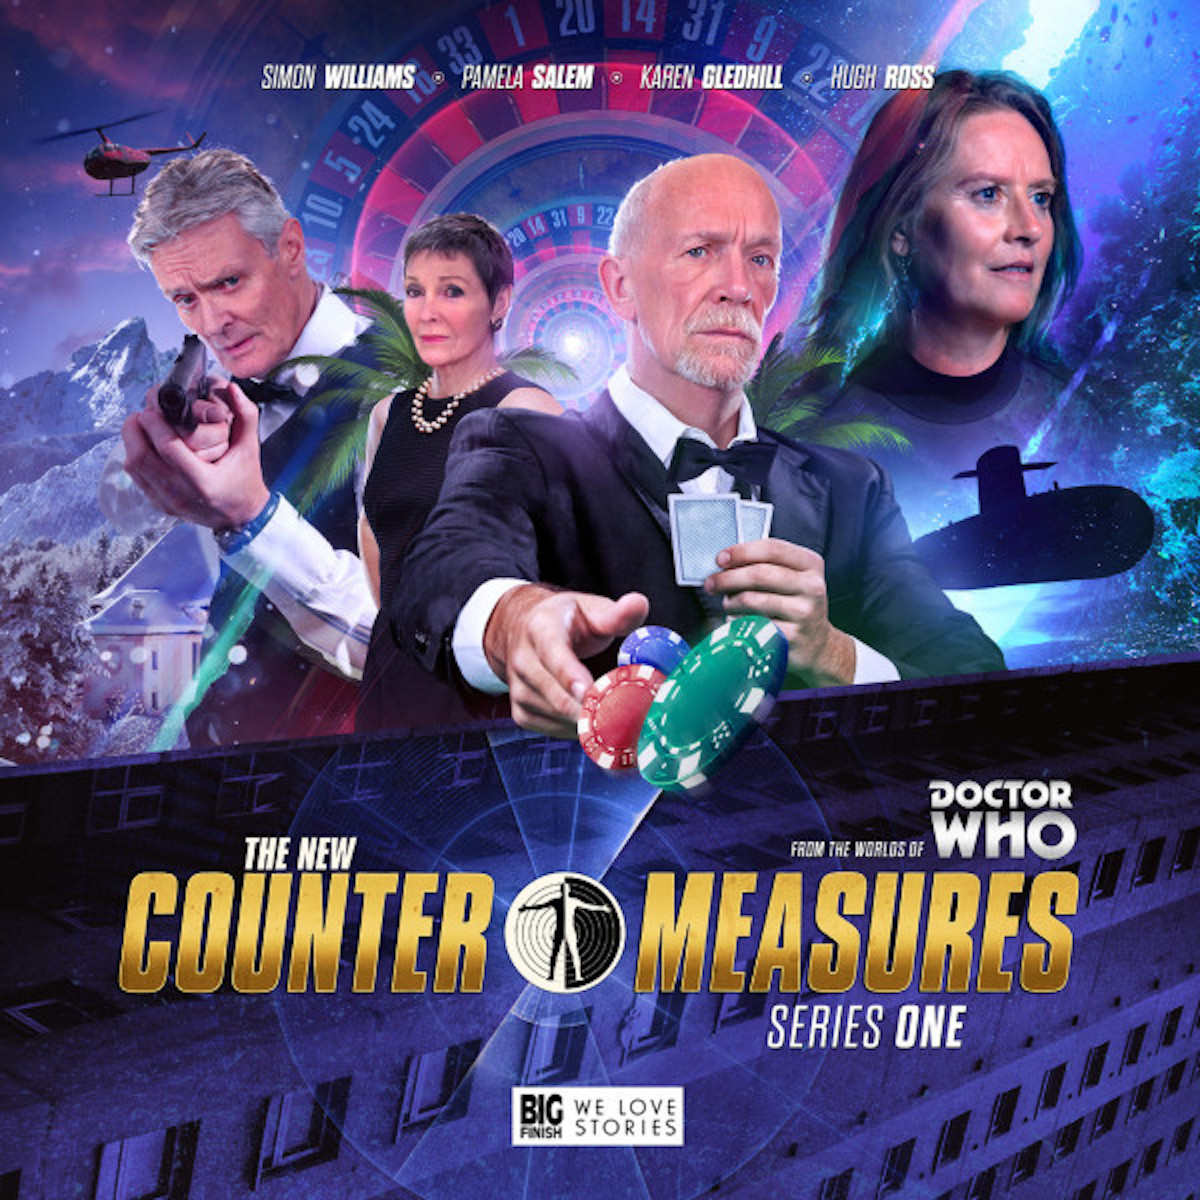 The New Counter Measures Series 1